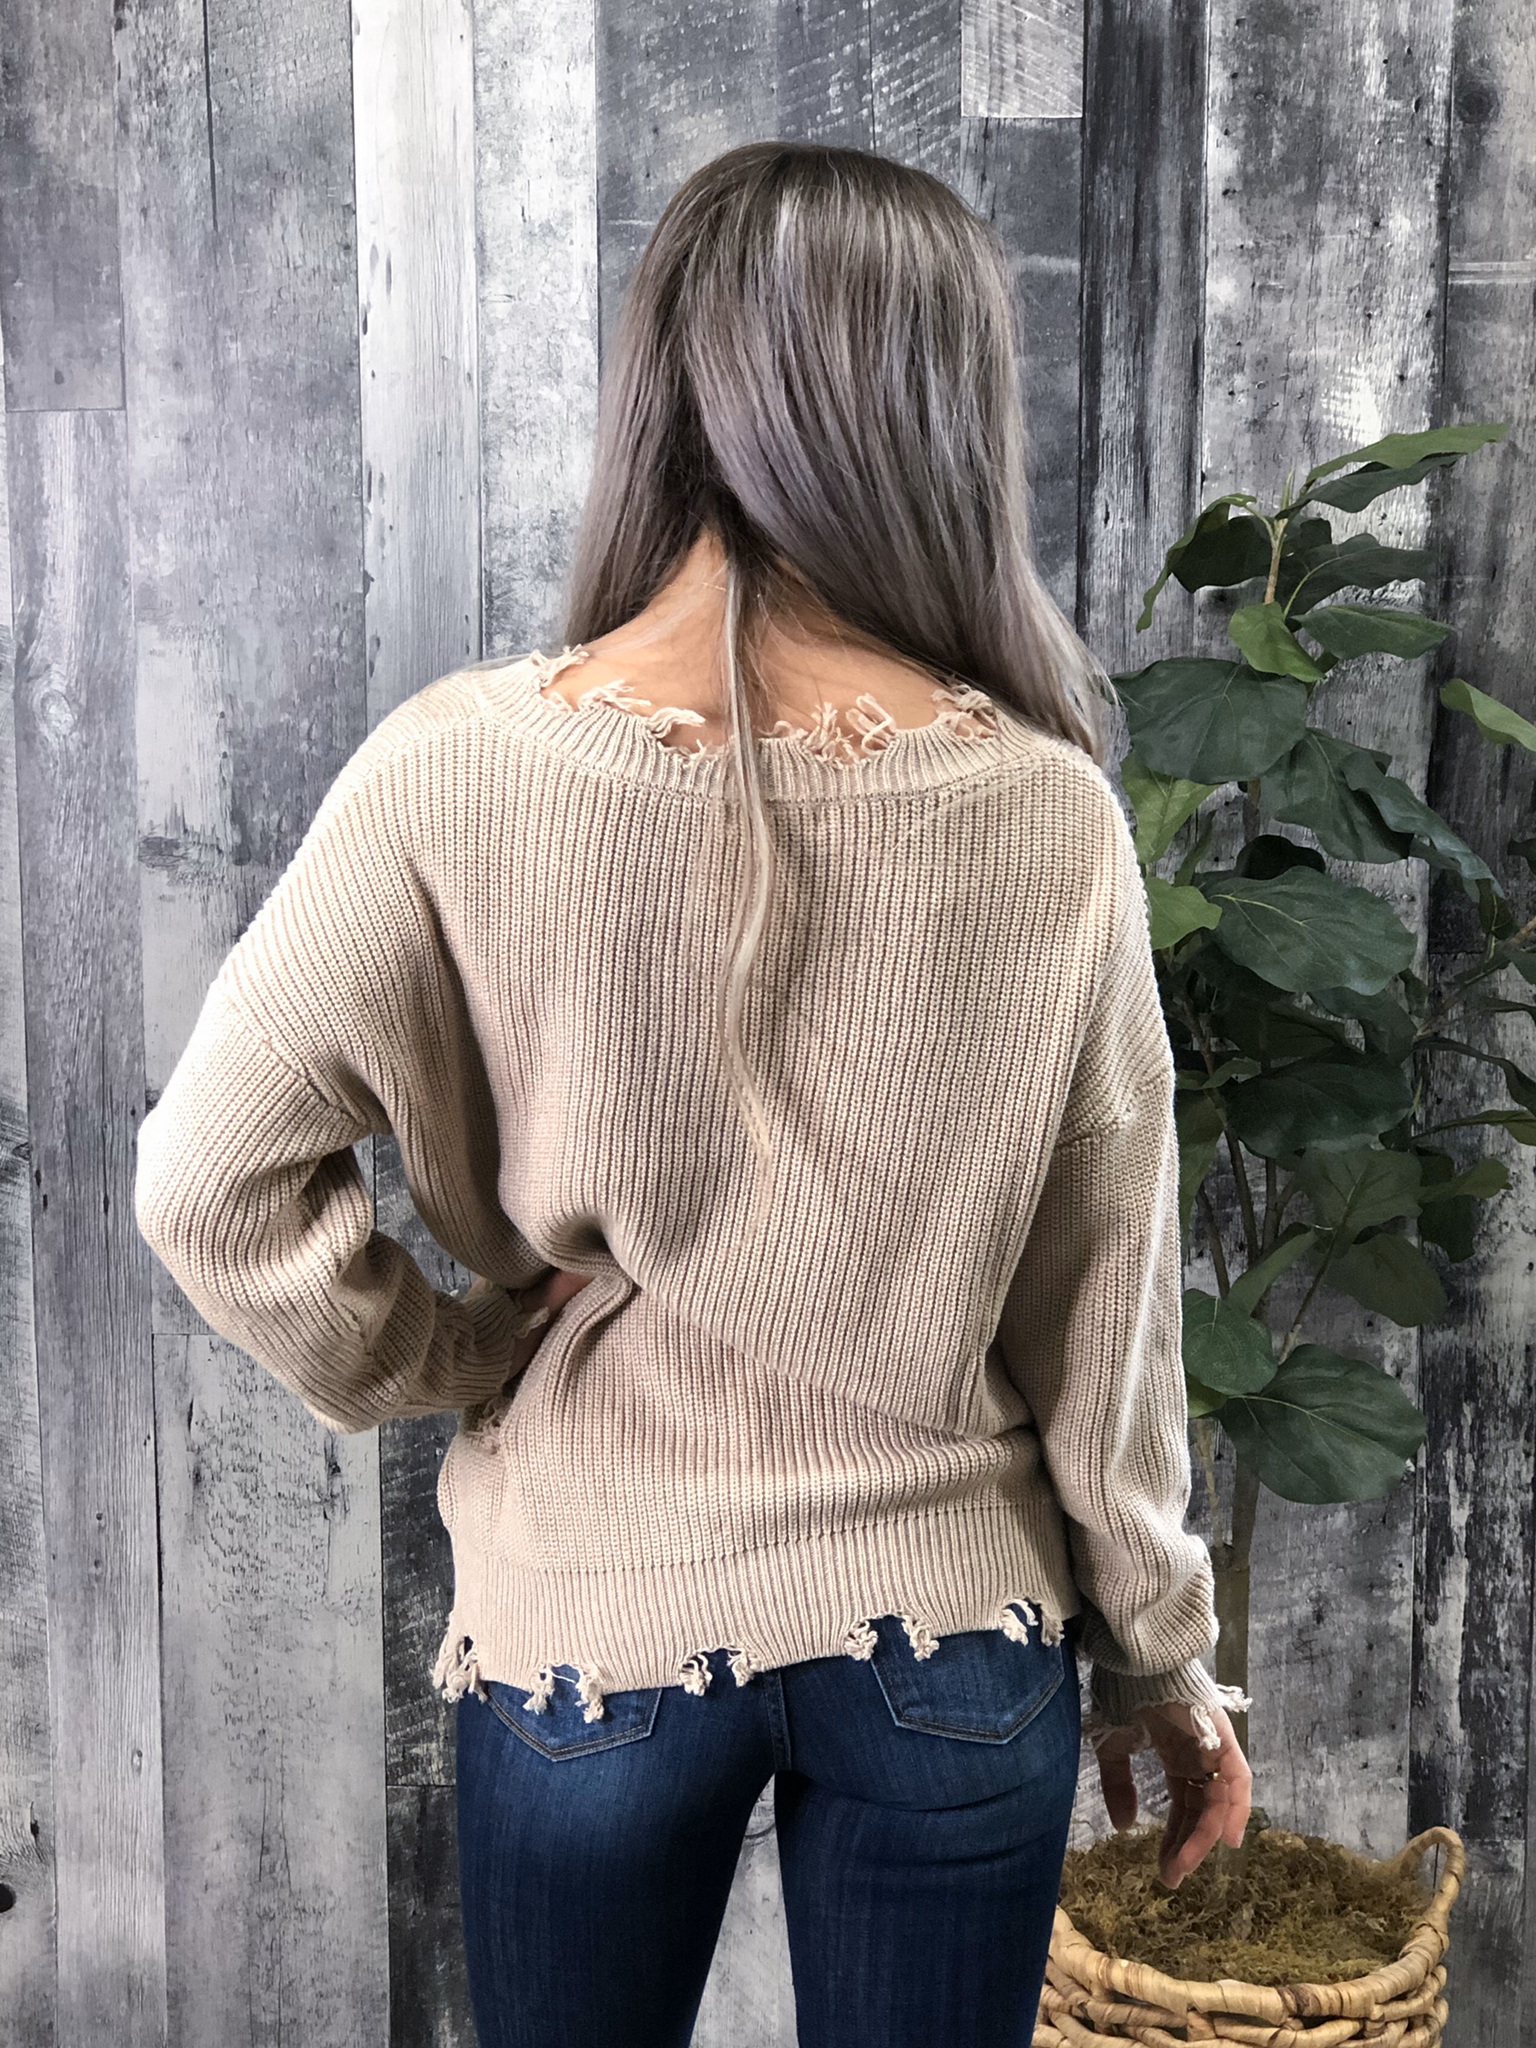 Cream V-neck Knit Sweater with frey detail